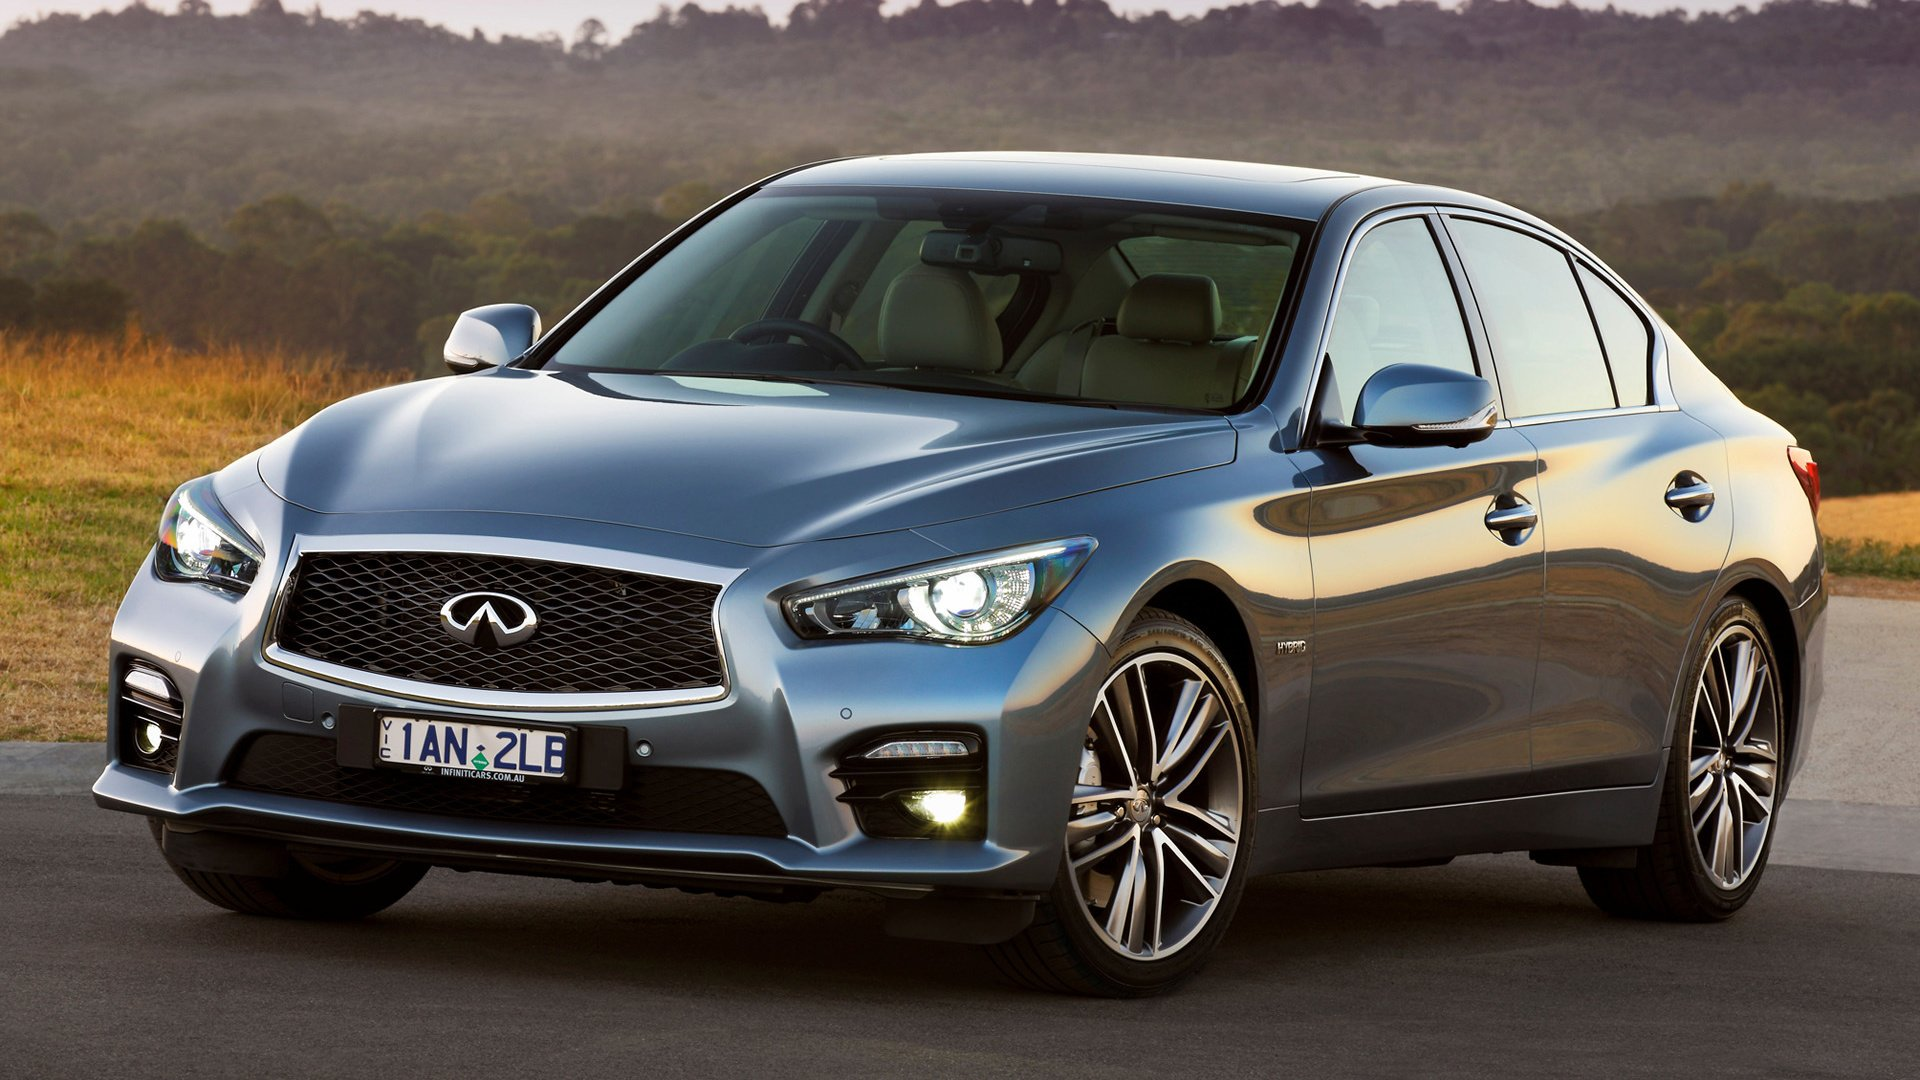 Vehicles - Infiniti Q50  Hybrid Car Luxury Car Compact Car Sedan Silver Car Car Wallpaper